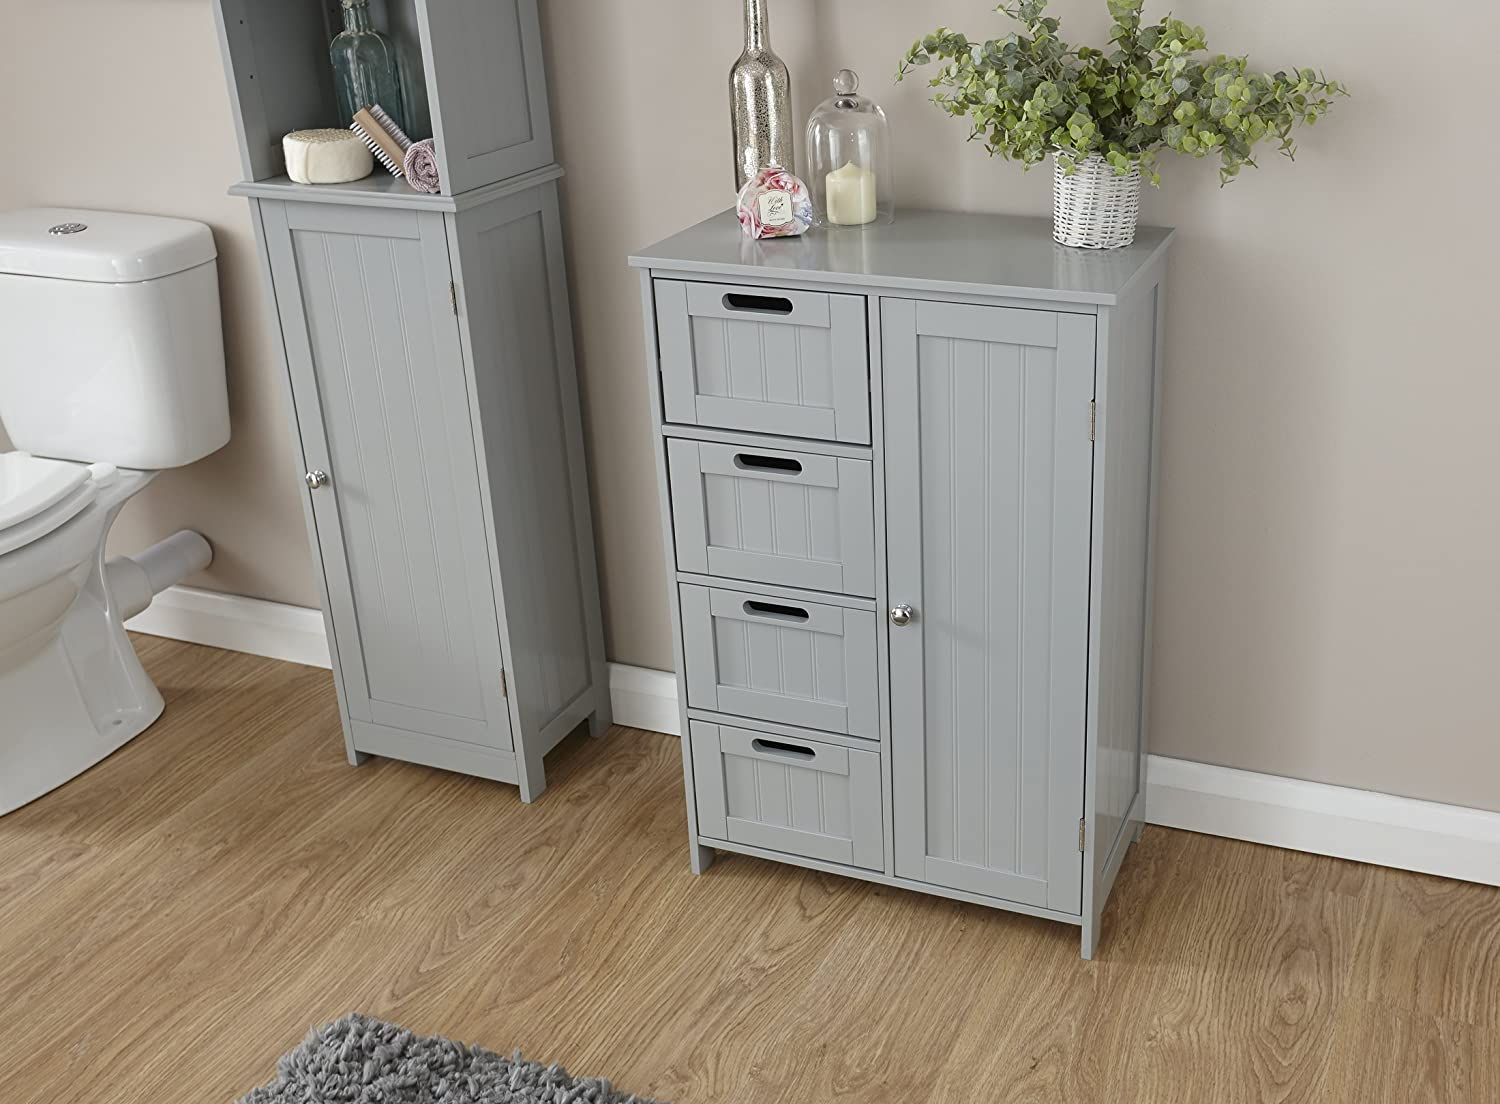 Colonial Grey Bathroom Furniture - Cupboards, Storage & Shelving GFW - The Furniture Warehouse